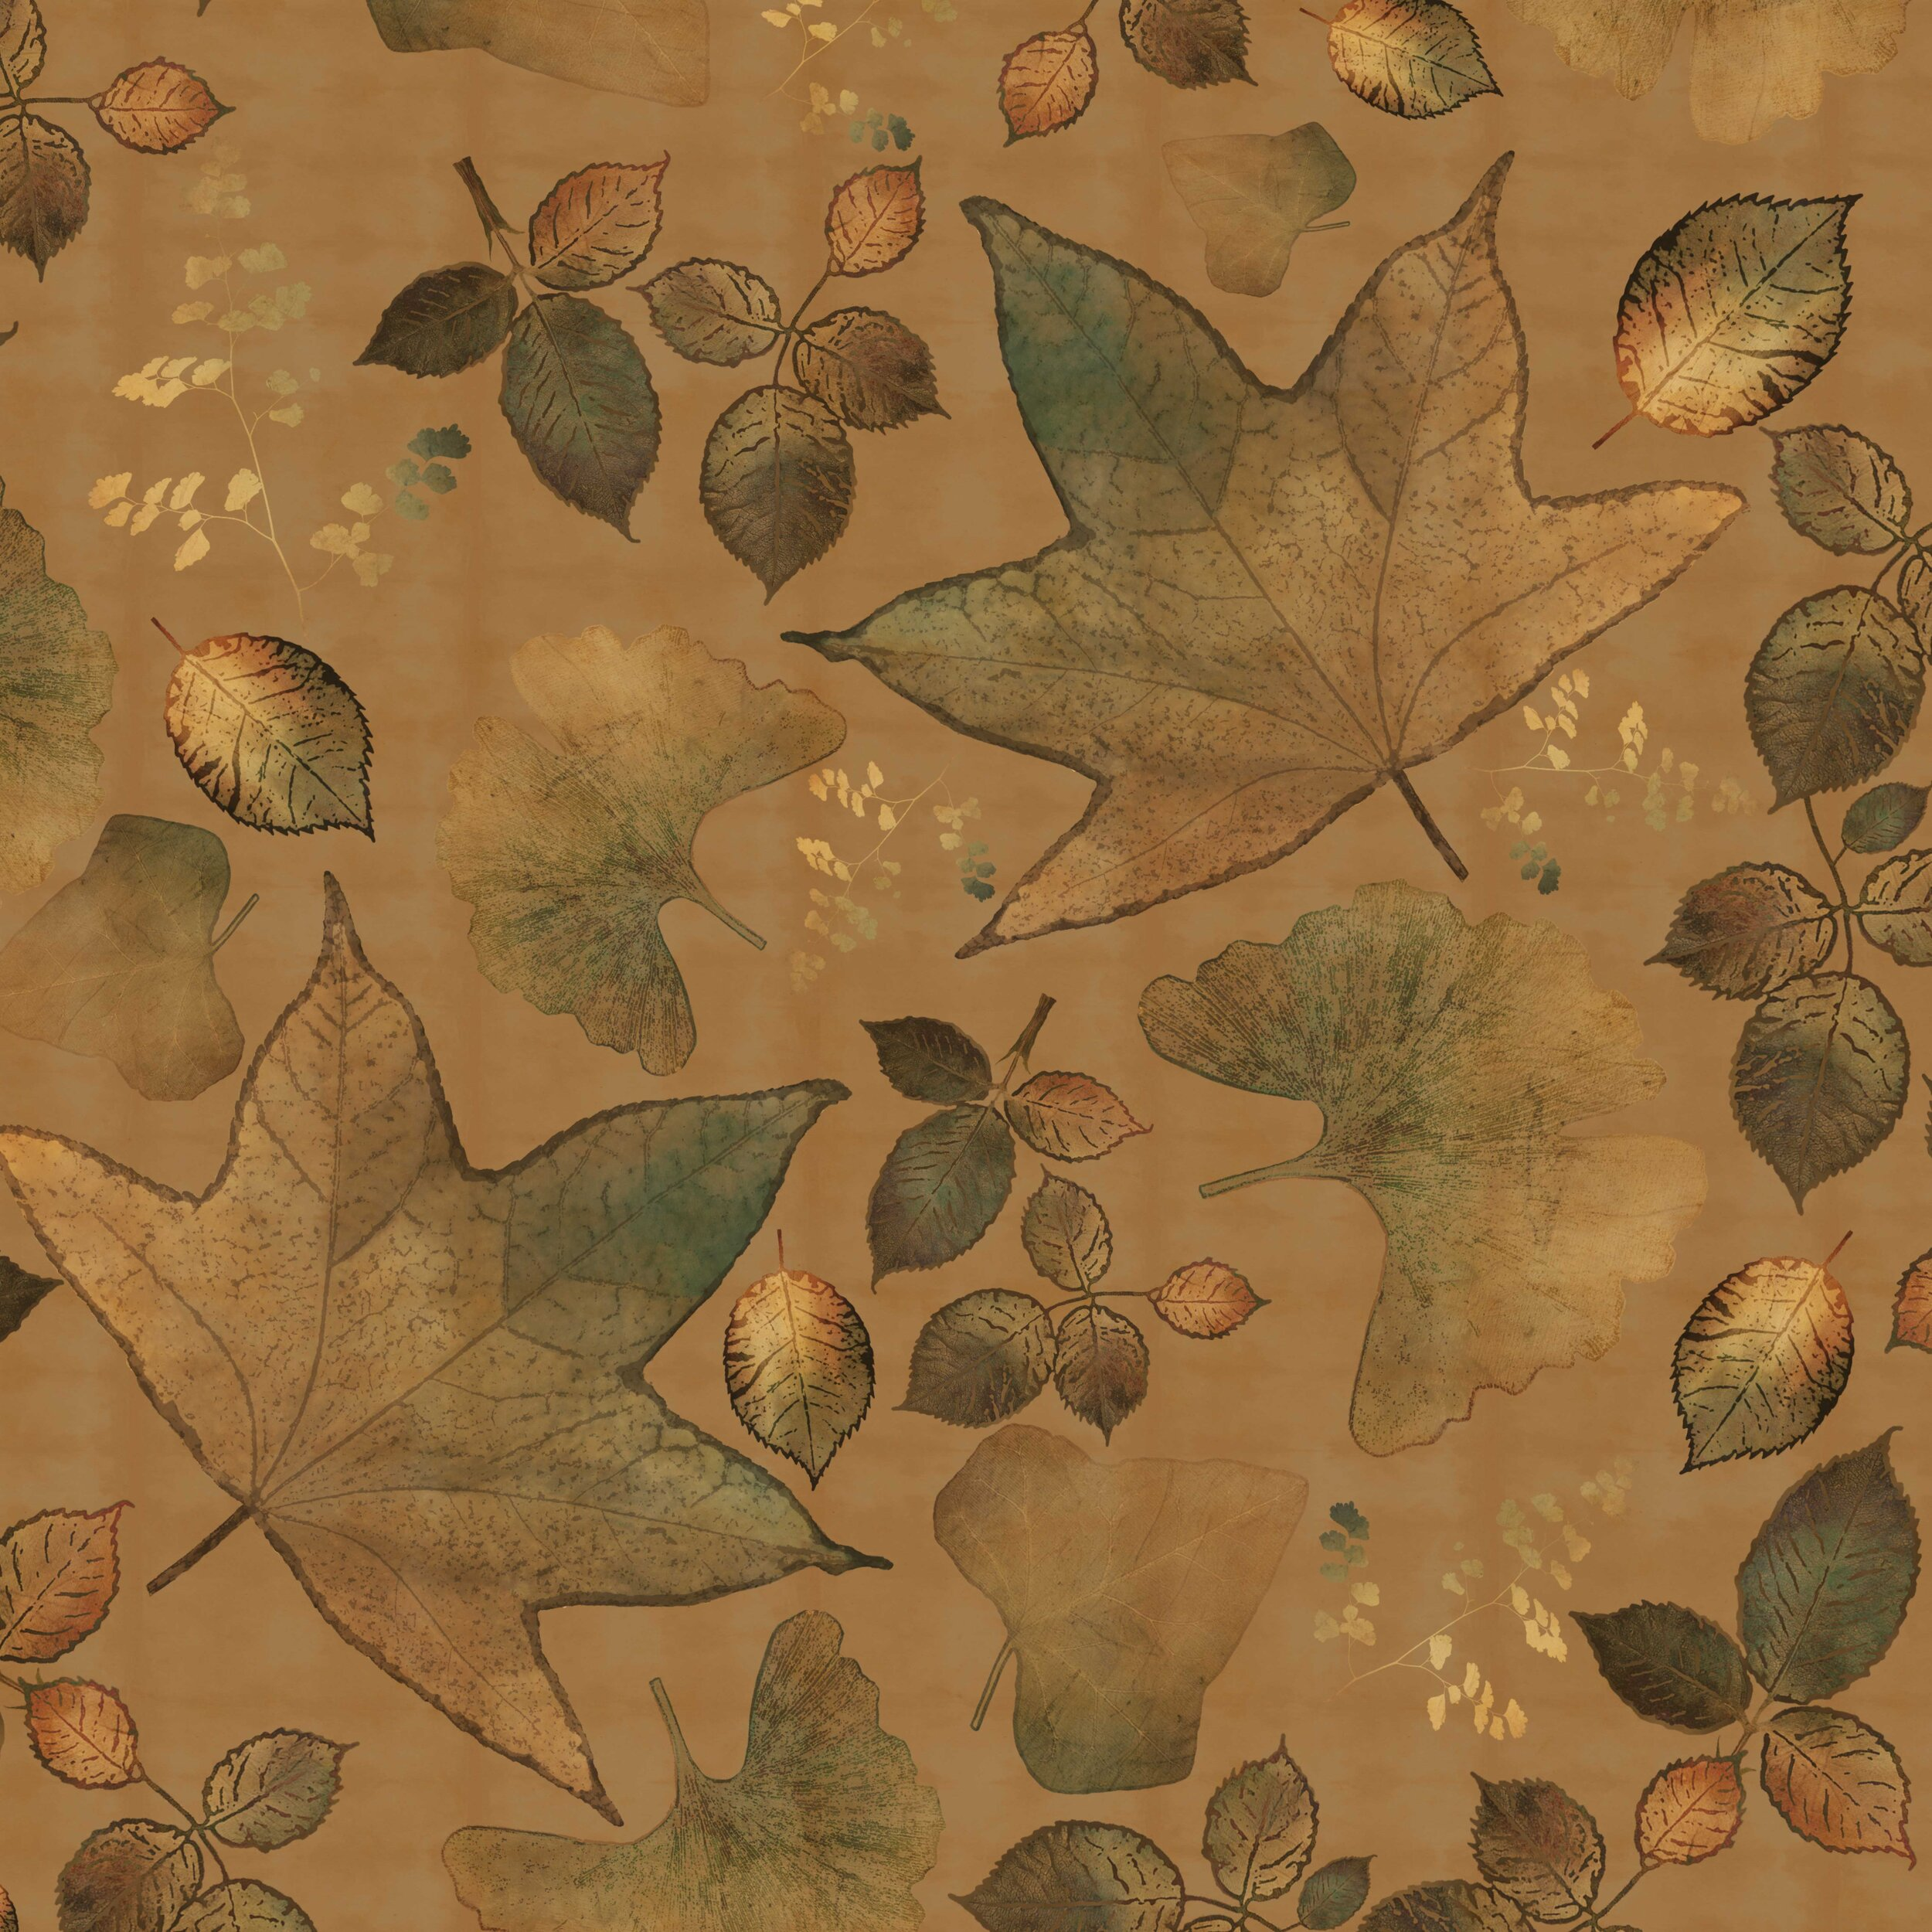 eco repeat fabric large scale master 20190923 larger scale.jpg